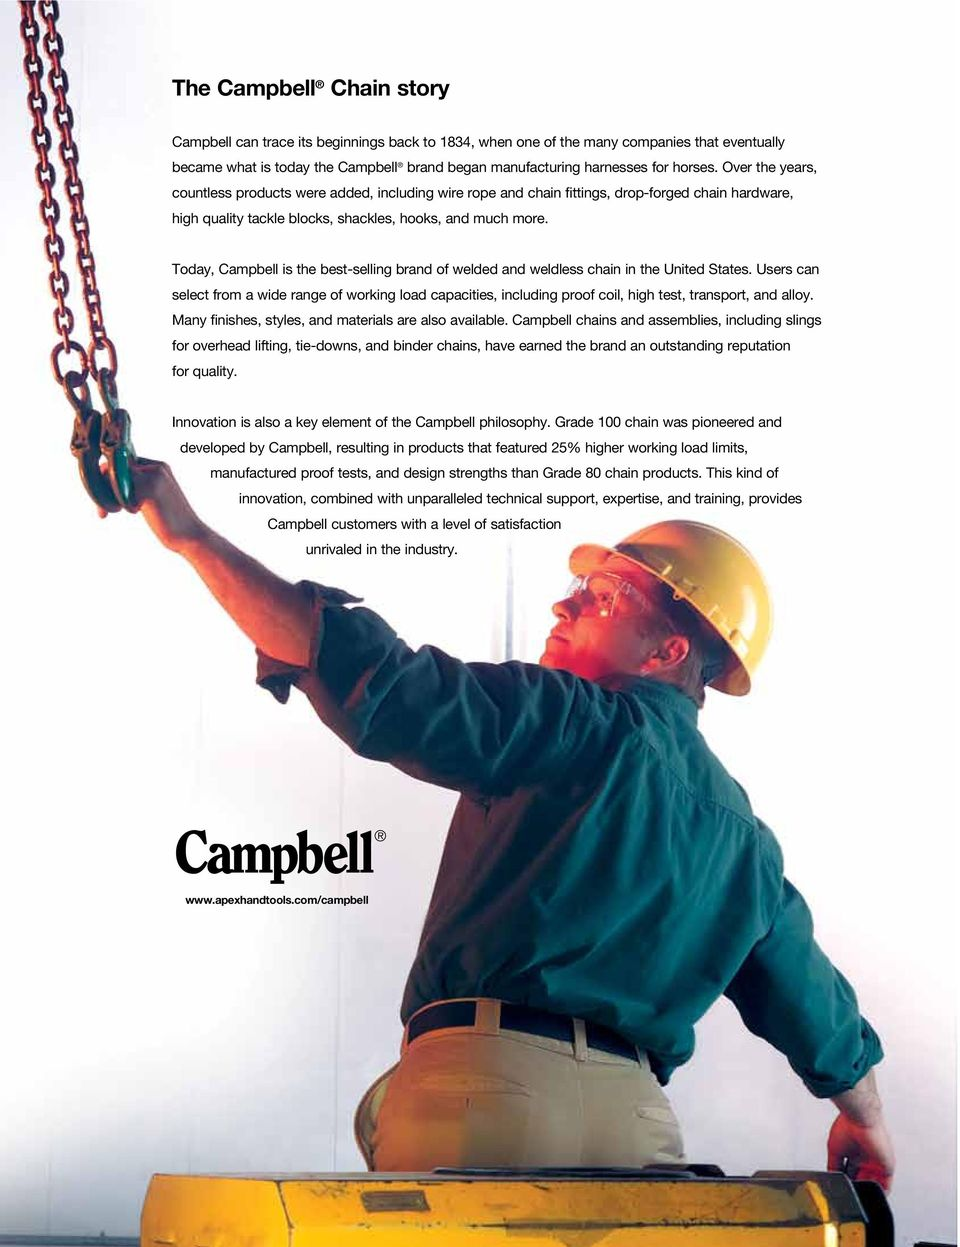 Today, Campbell is the best-selling brand of welded and weldless chain in the United States.